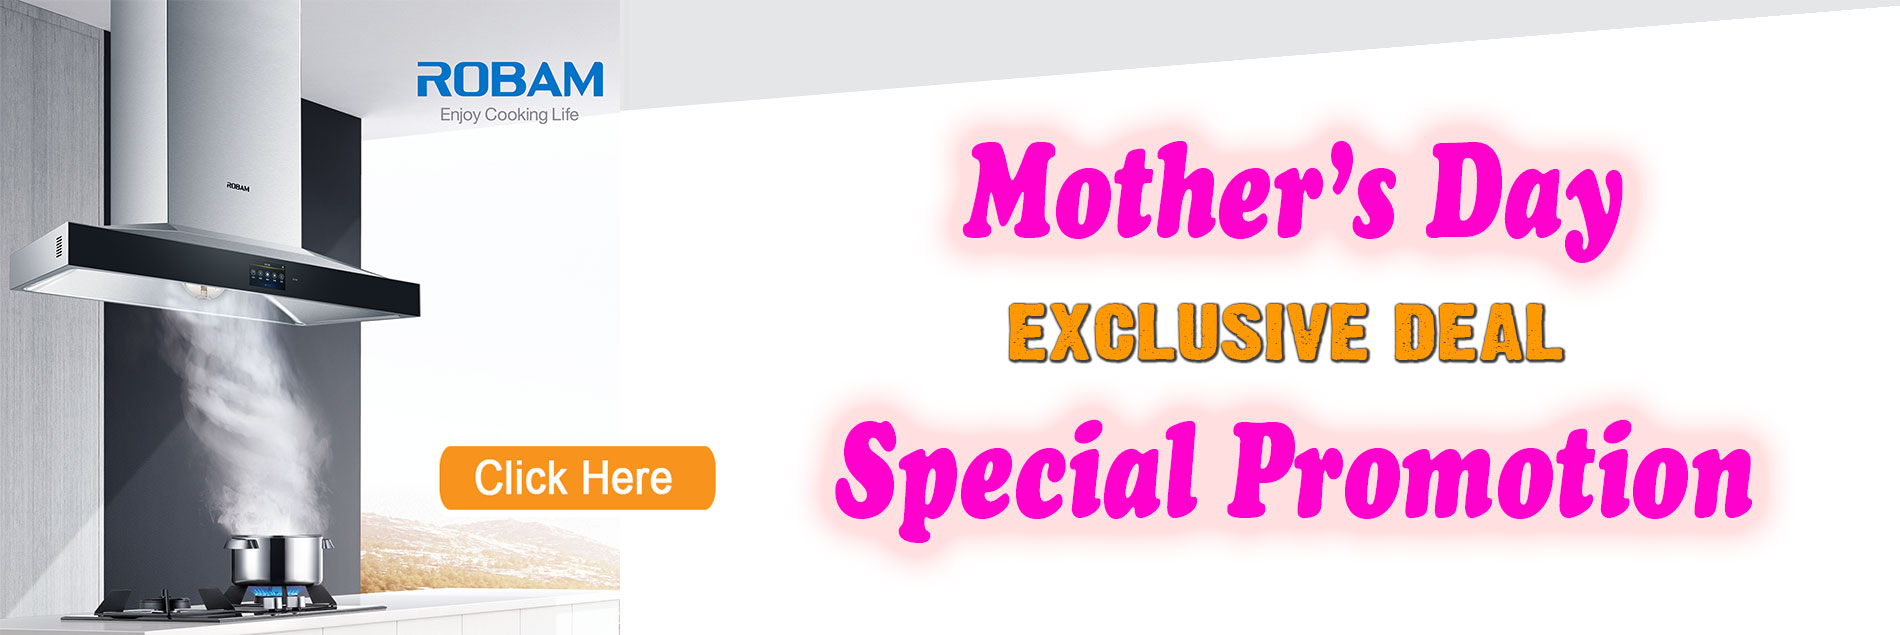 Robam Mother's Day Special Promotion